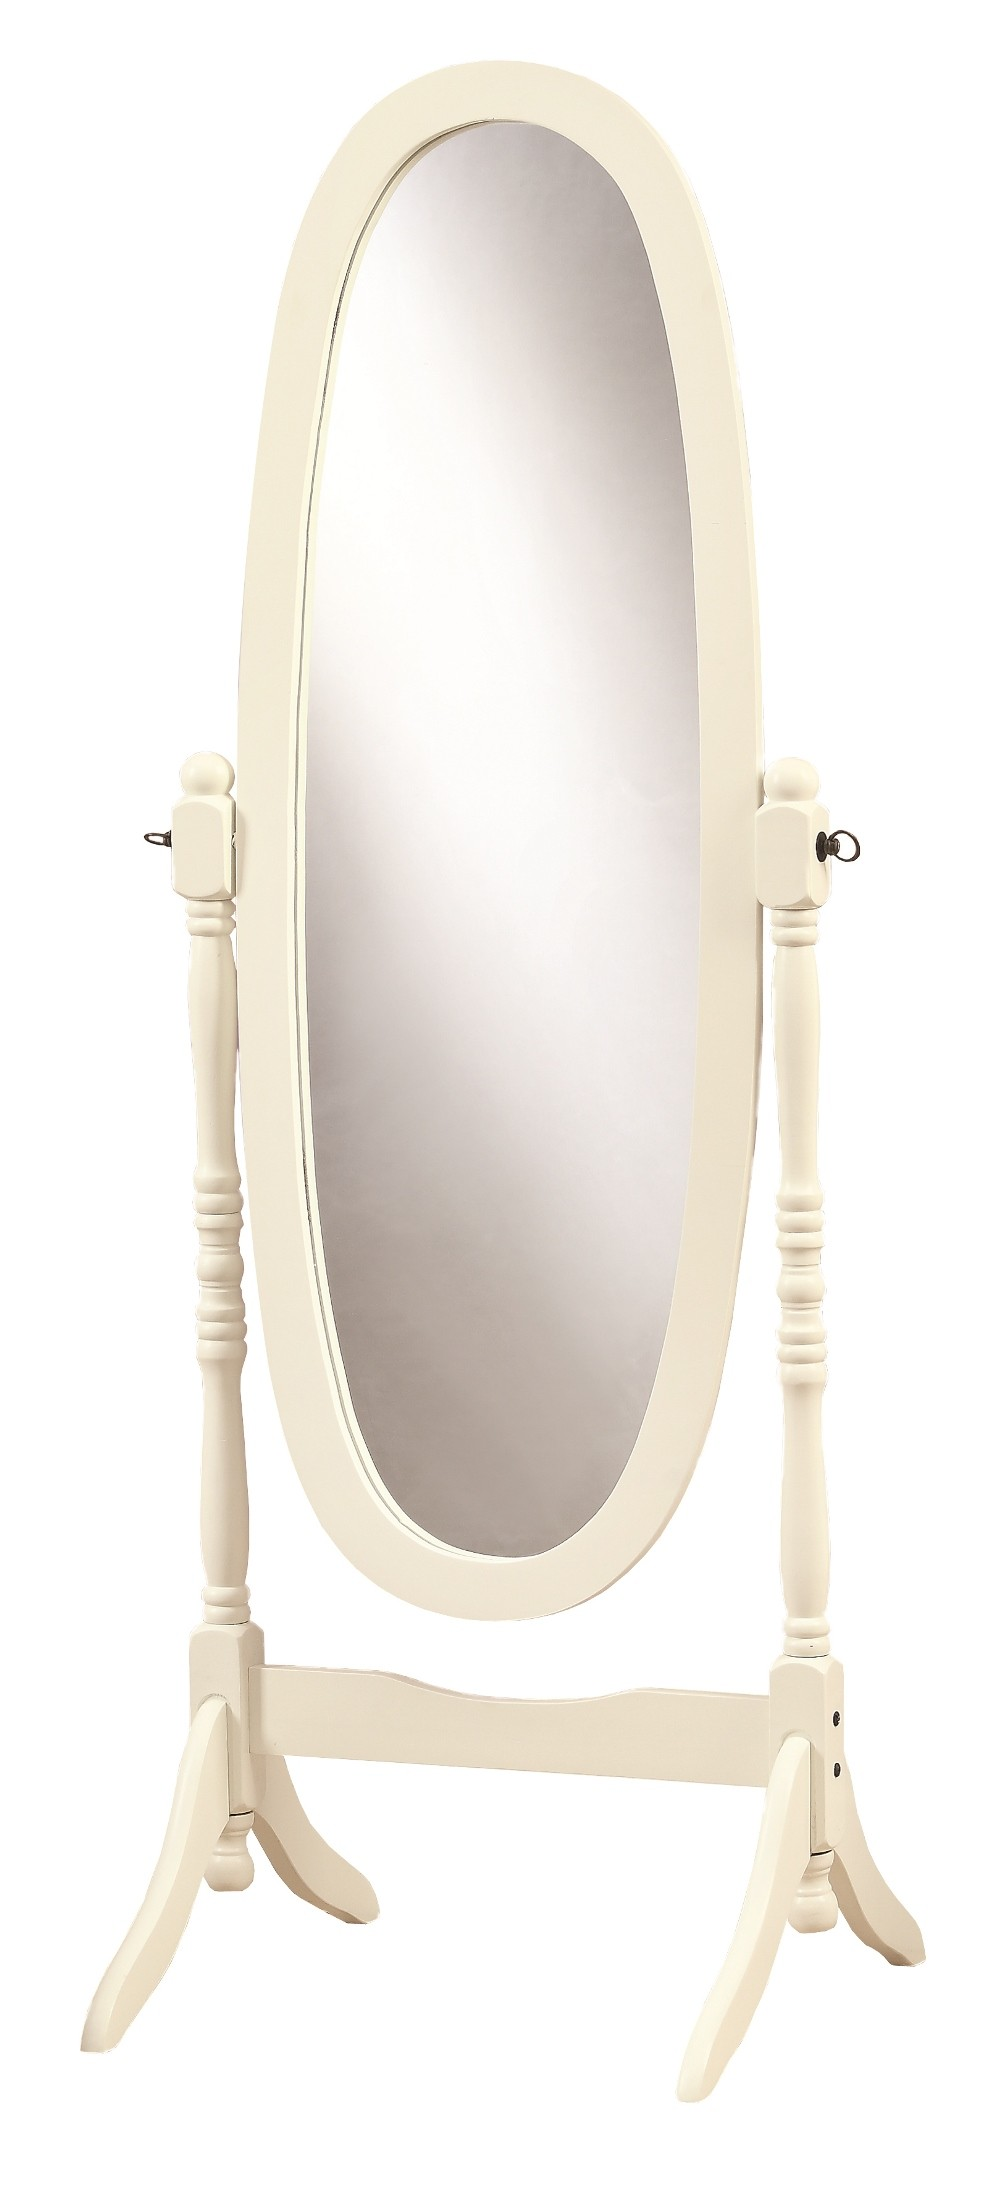 3102 antique white oval cheval mirror from monarch i 3102 for Cheval mirror